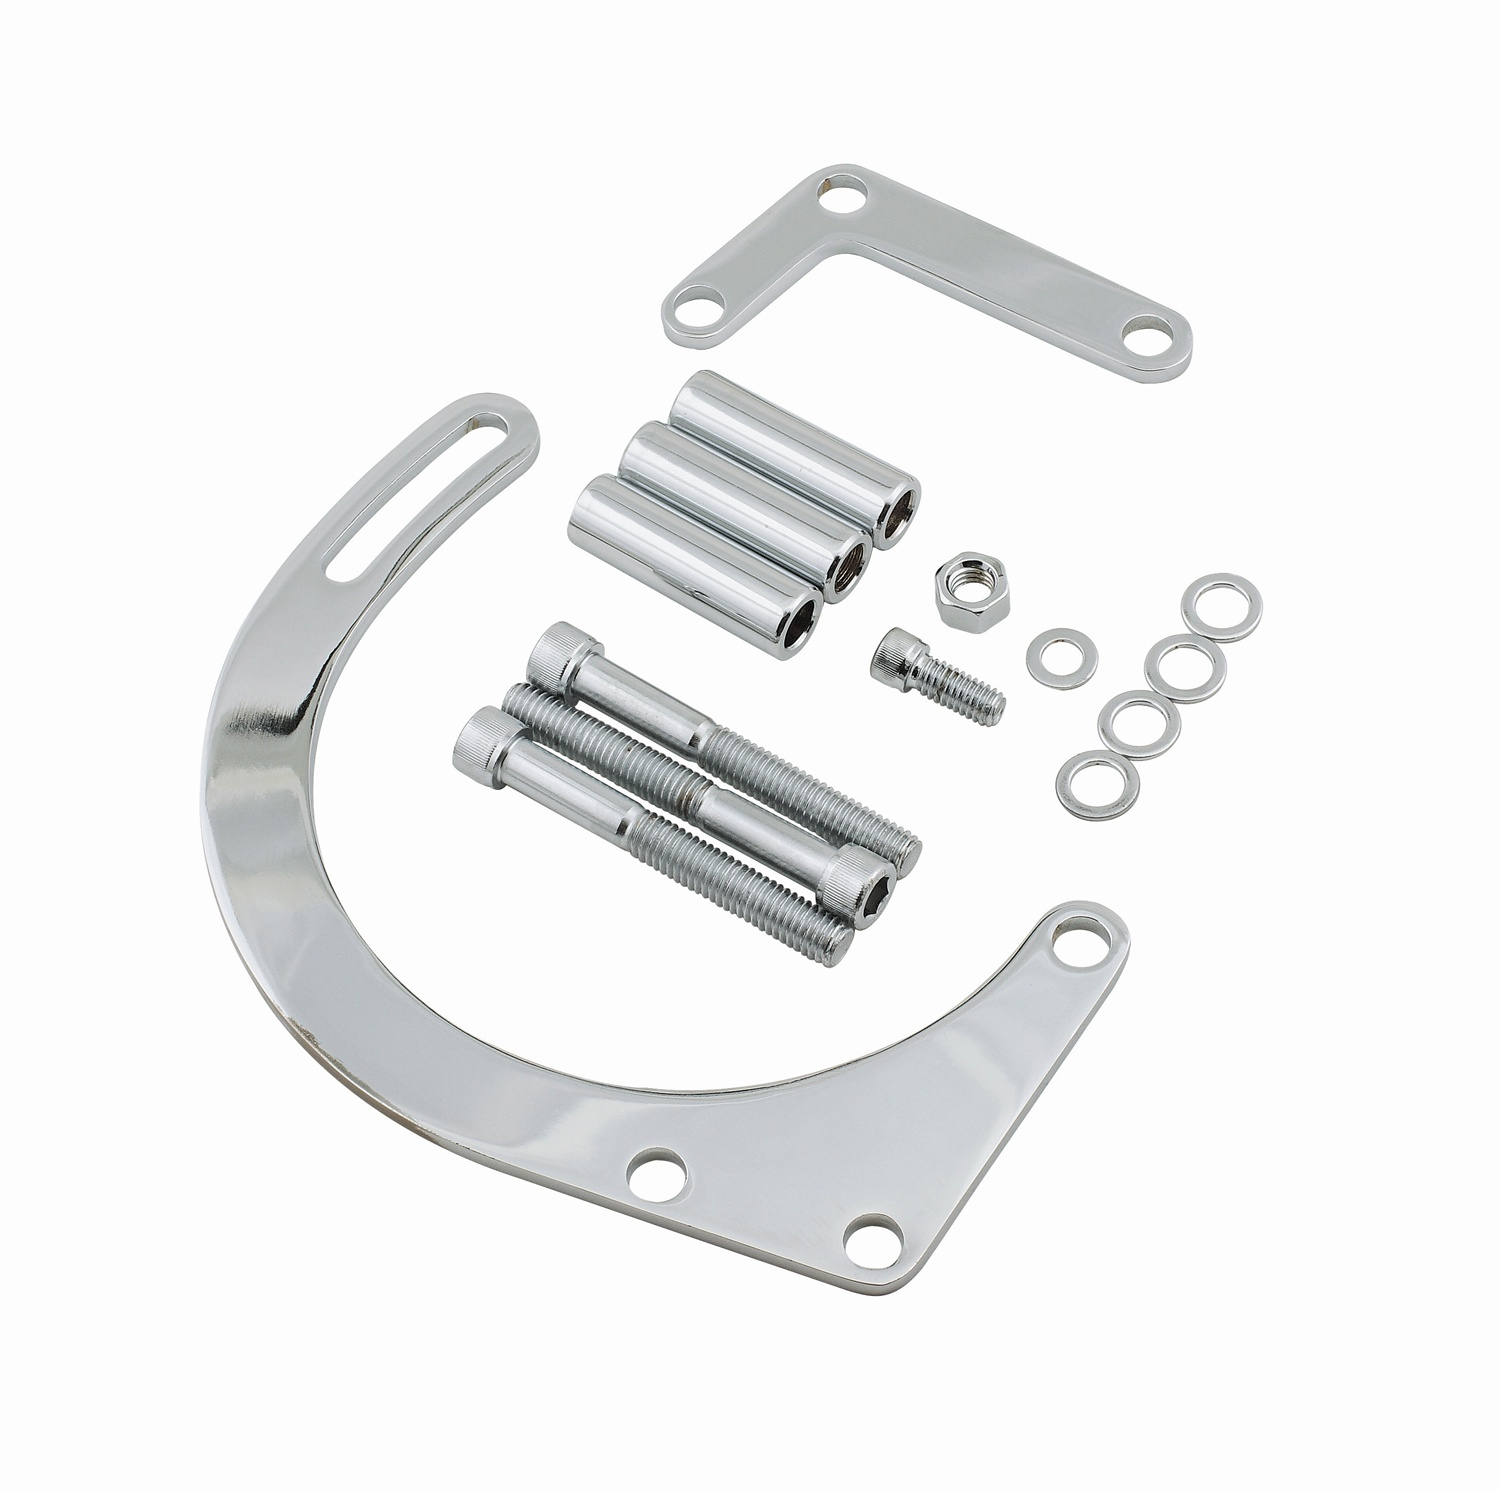 Chevrolet Performance Gen V Lt1 Lt4 Aluminum Bare Block: Mr Gasket 5179 Low Mount Alternator Brackets At ATKHP.com